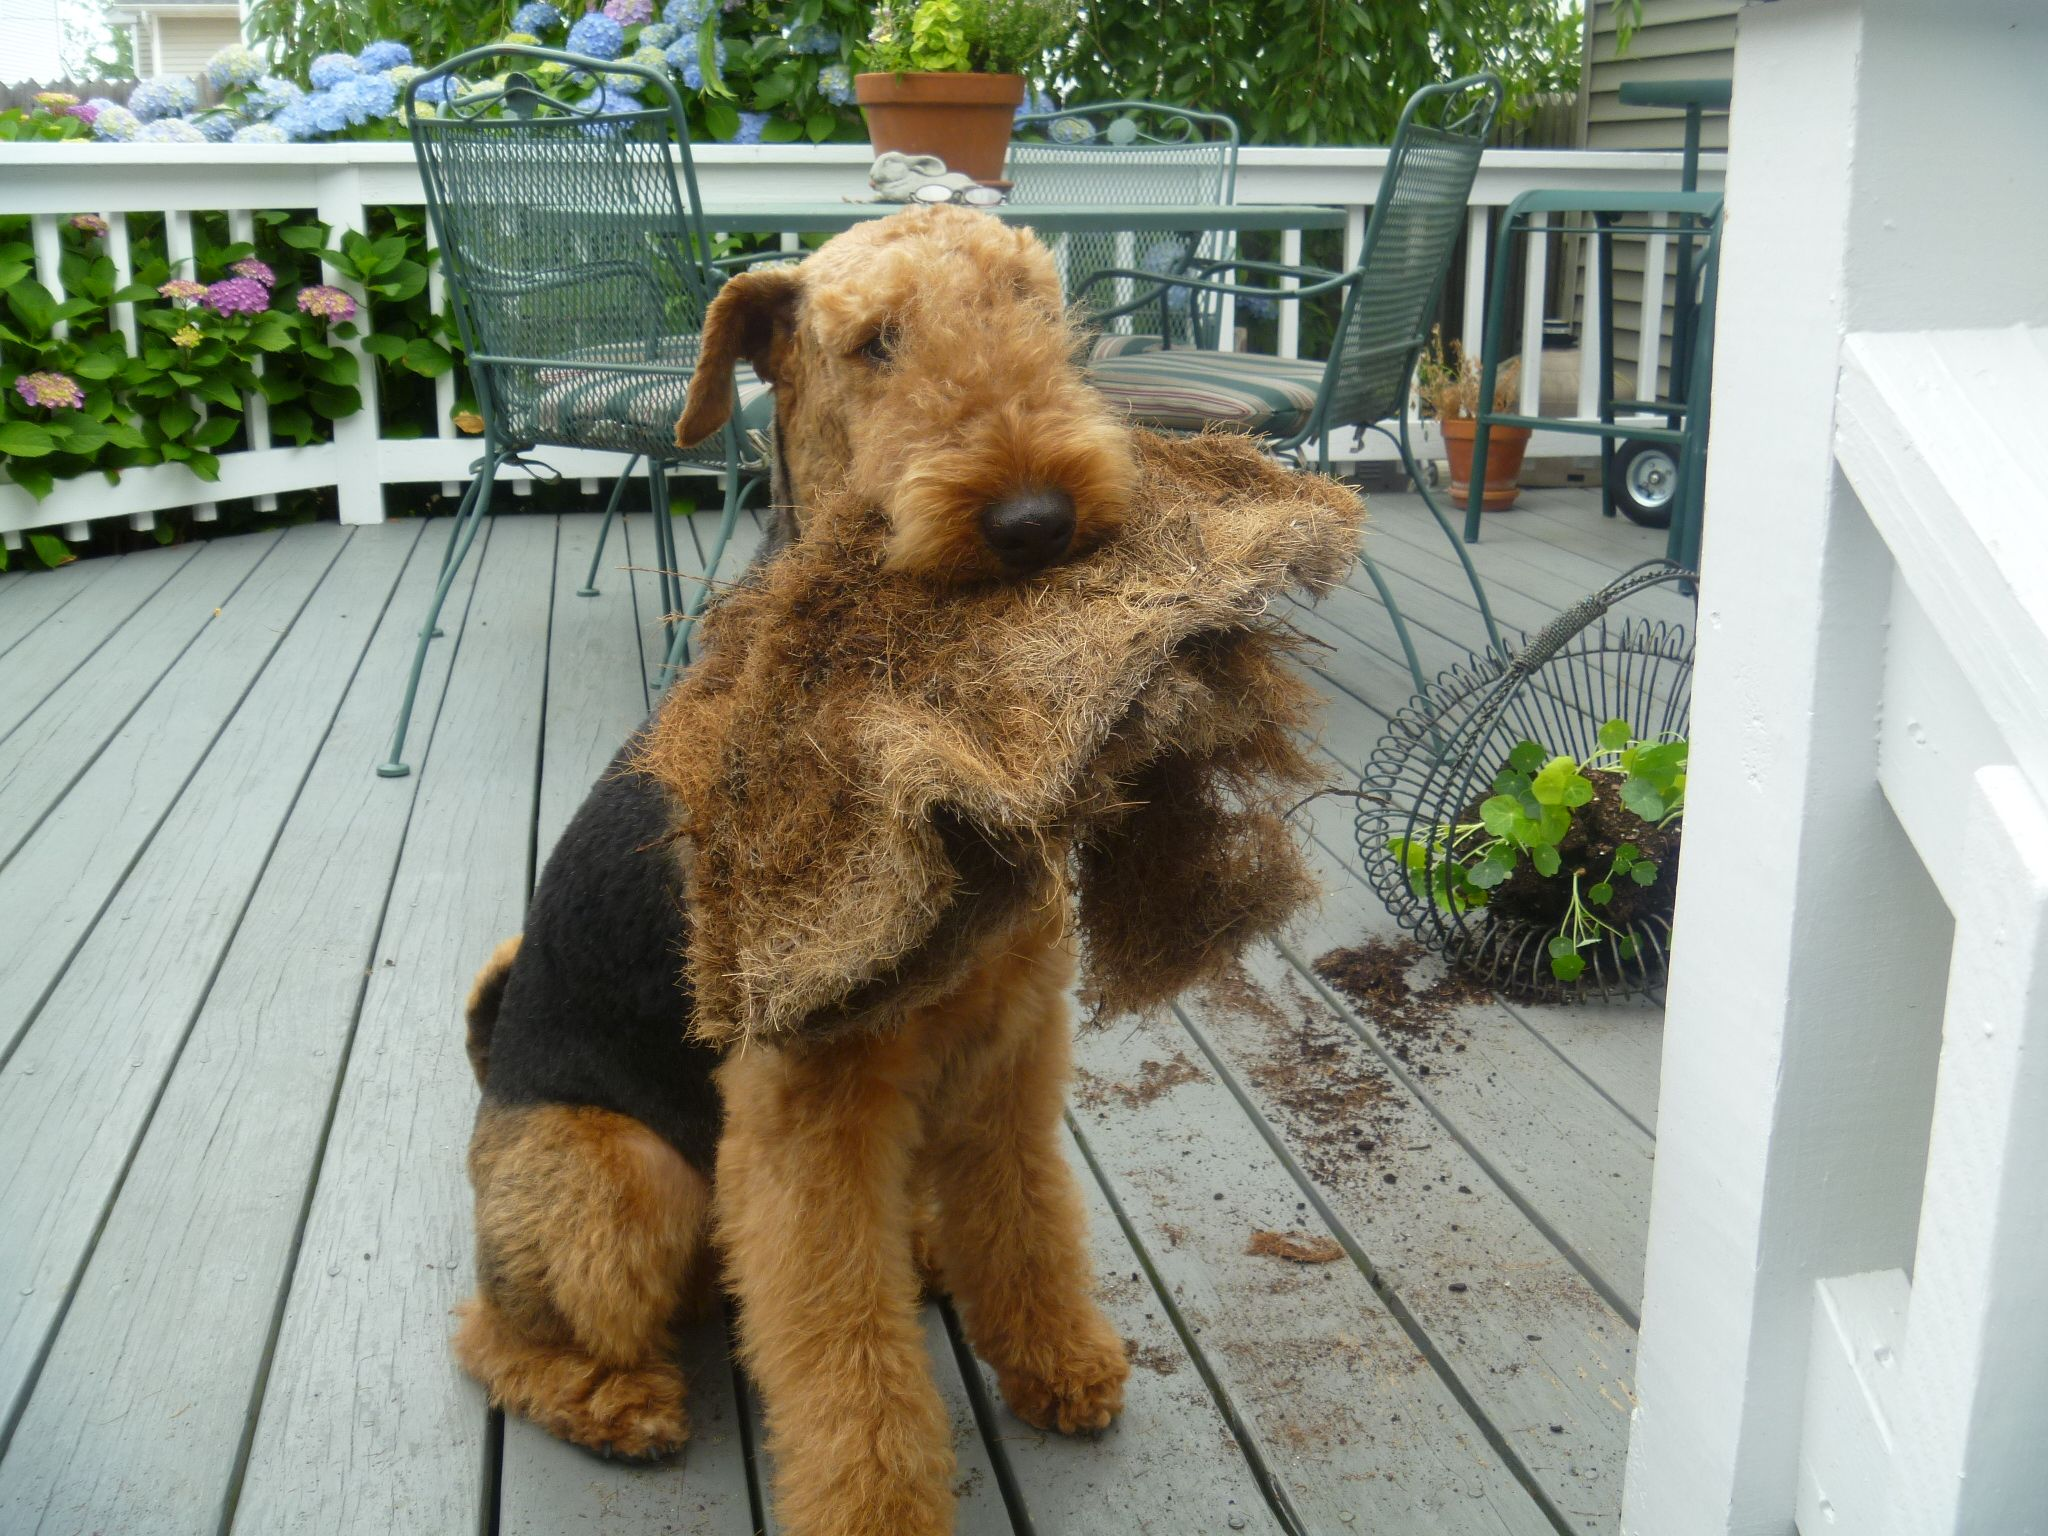 Augie Airedale Dogs Airedale Terrier Bad Dog